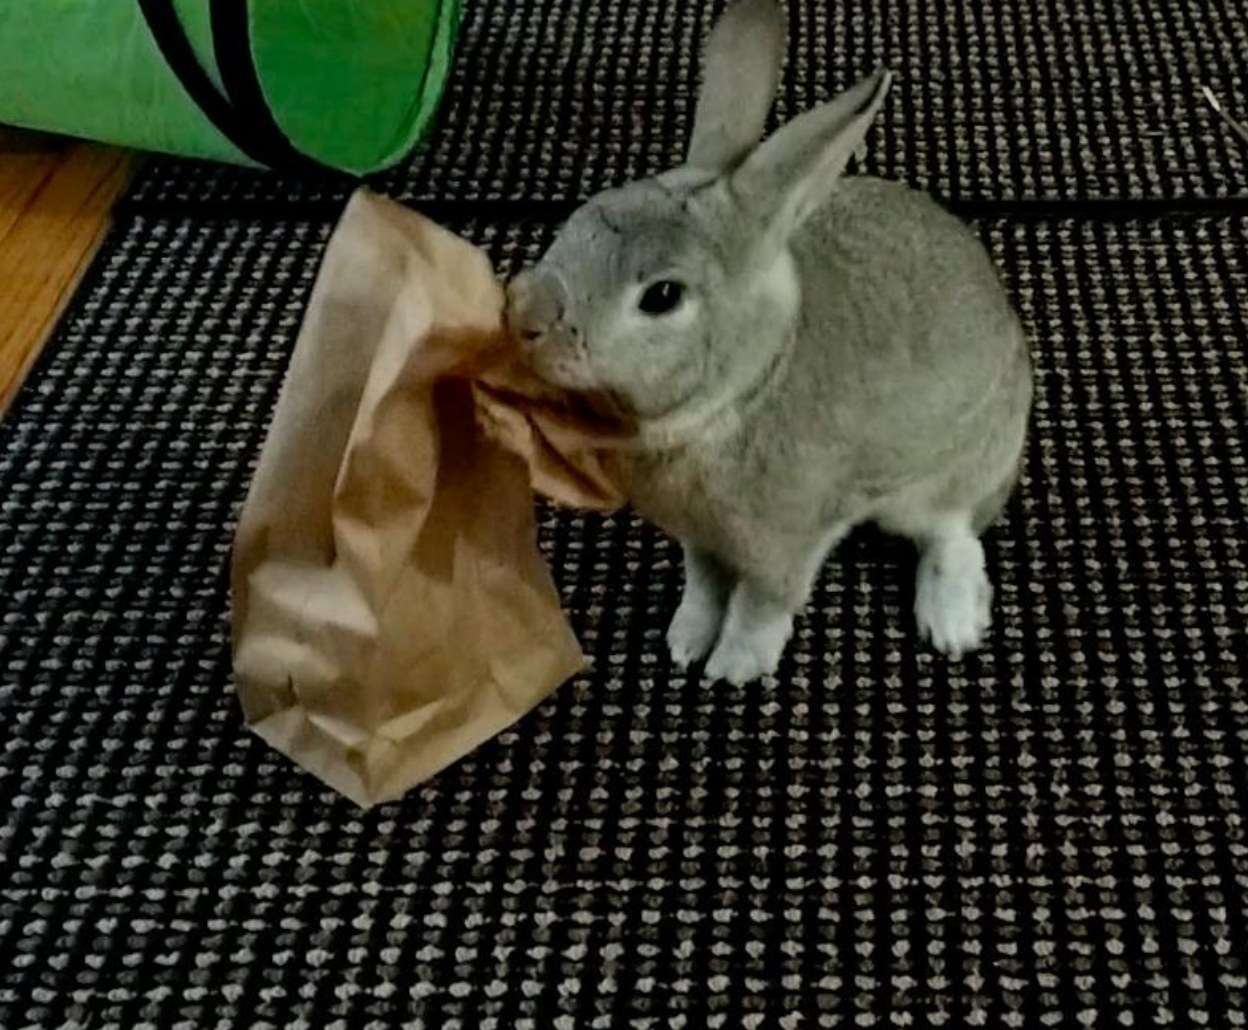 Rabbit trying to get into a bag of the food